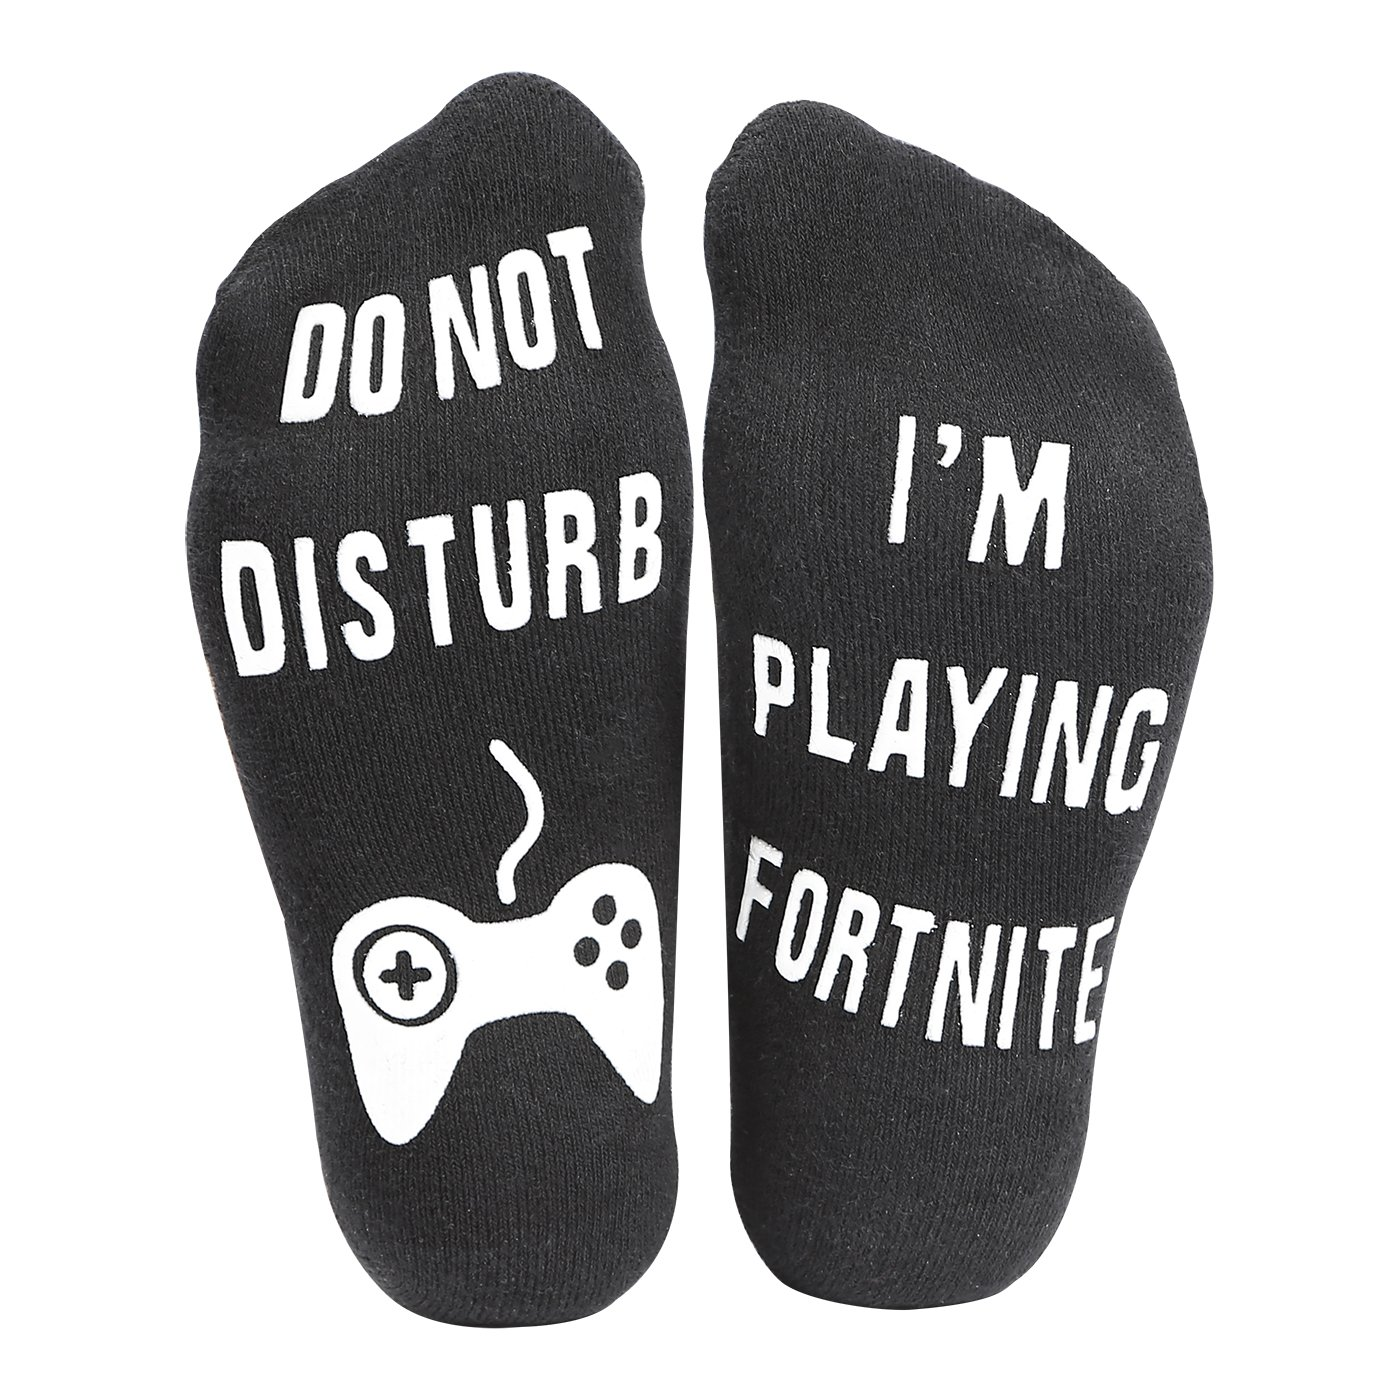 AngelLoverMVPstore Funny Ankle Cotton Socks –Do Not Disturb, I'm Playing Fortnite, Great Gift for Game Players and Fortnite Lovers (1 Pair, Black) I' m Playing Fortnite Angel Lover